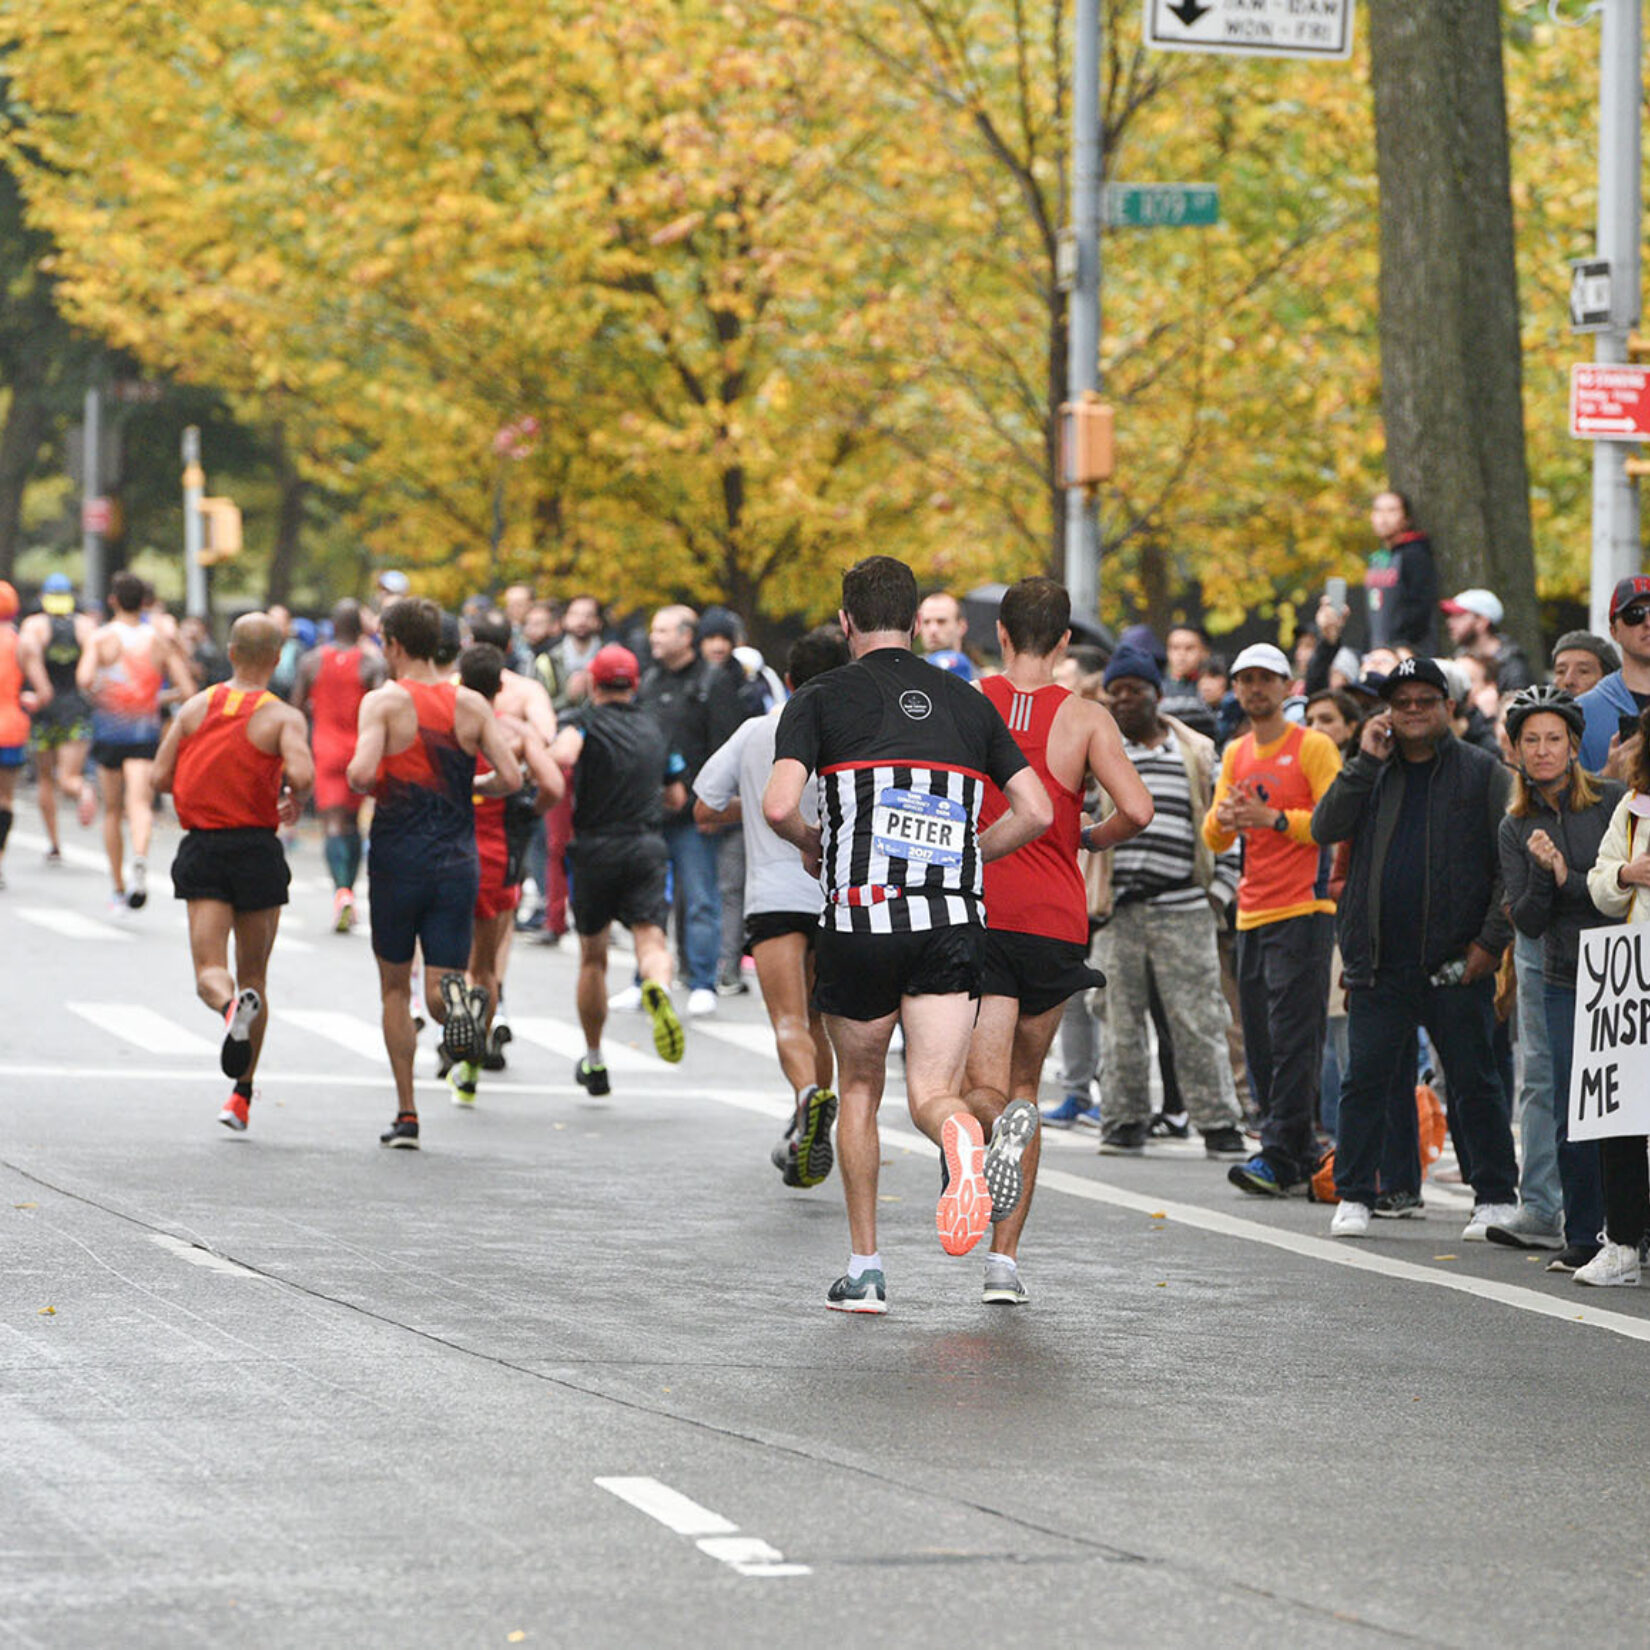 Runners pass cheering crowds lining a roadway in the Park